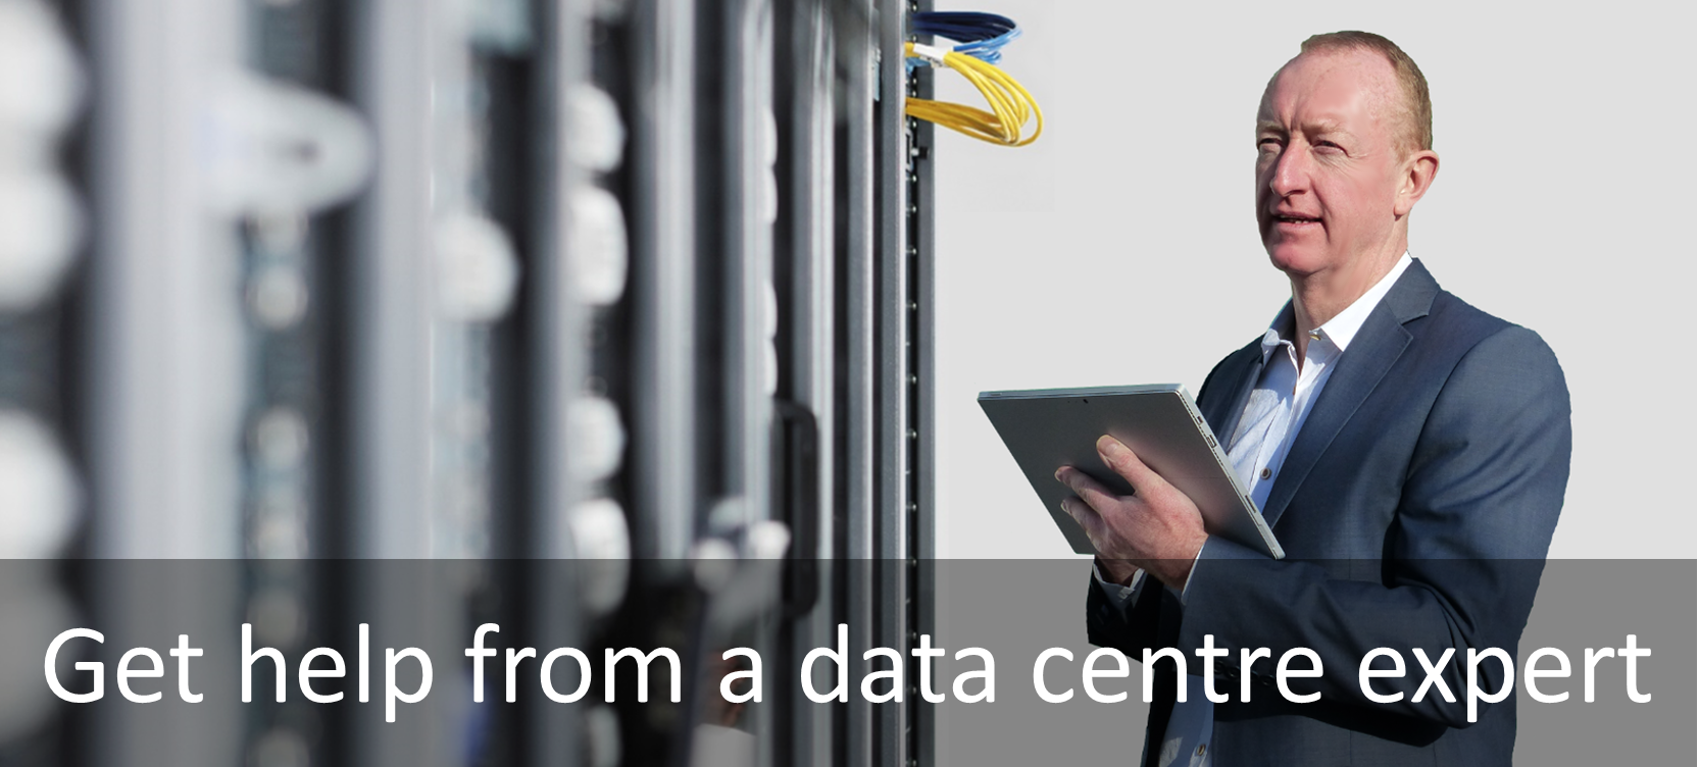 Get help from a data centre expert